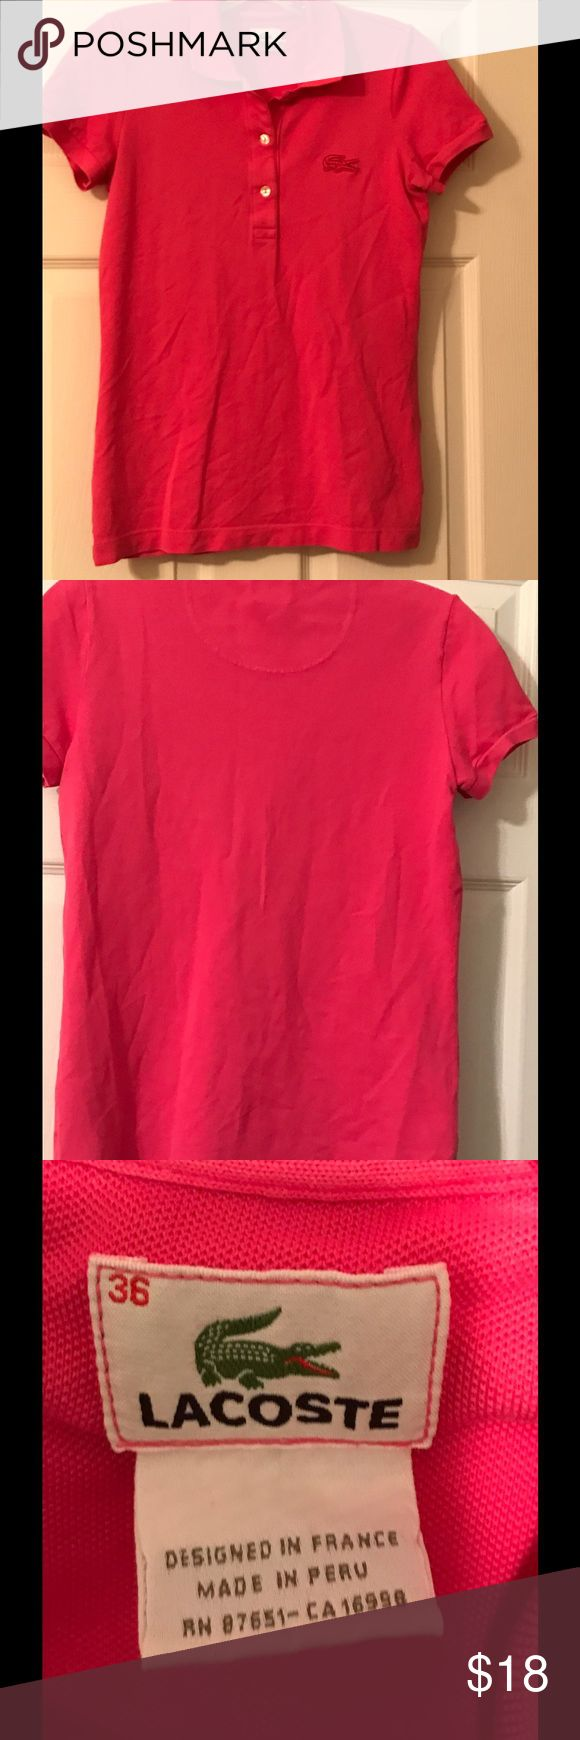 Ladies Pink Lacoste Polo Shirt Pretty Pink Lacoste Shirt. Lacoste Tops